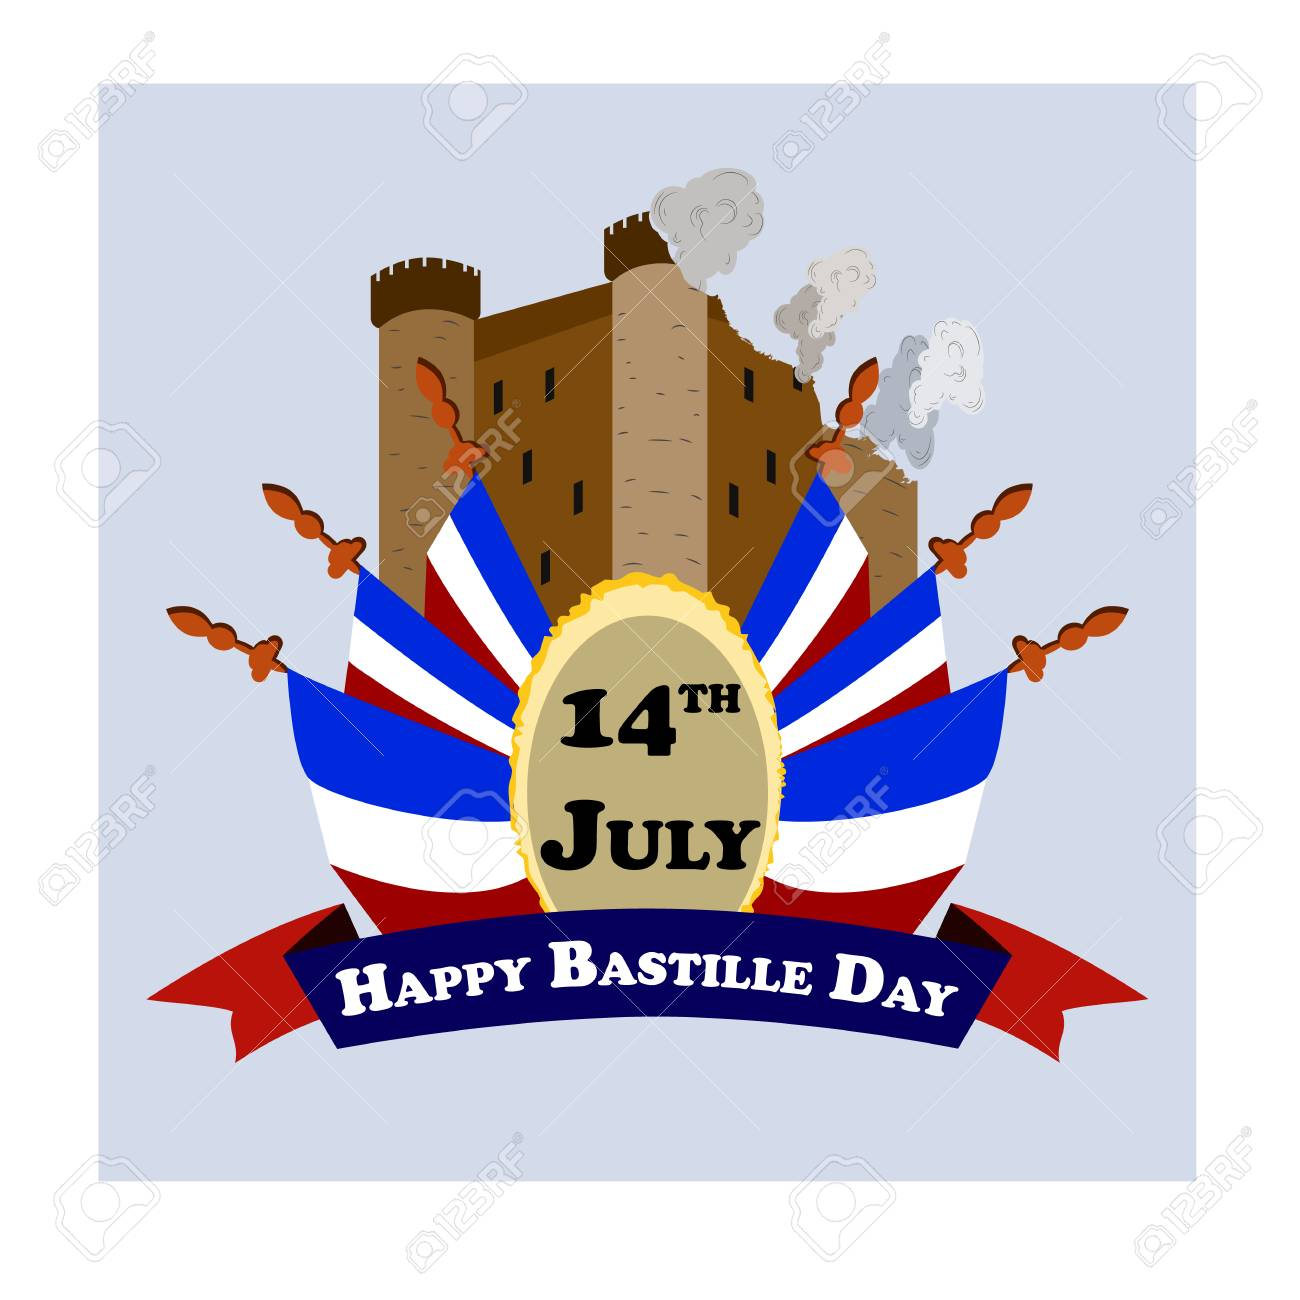 Concept for the French National Day Bastille Day, July 14, vector - 101037160